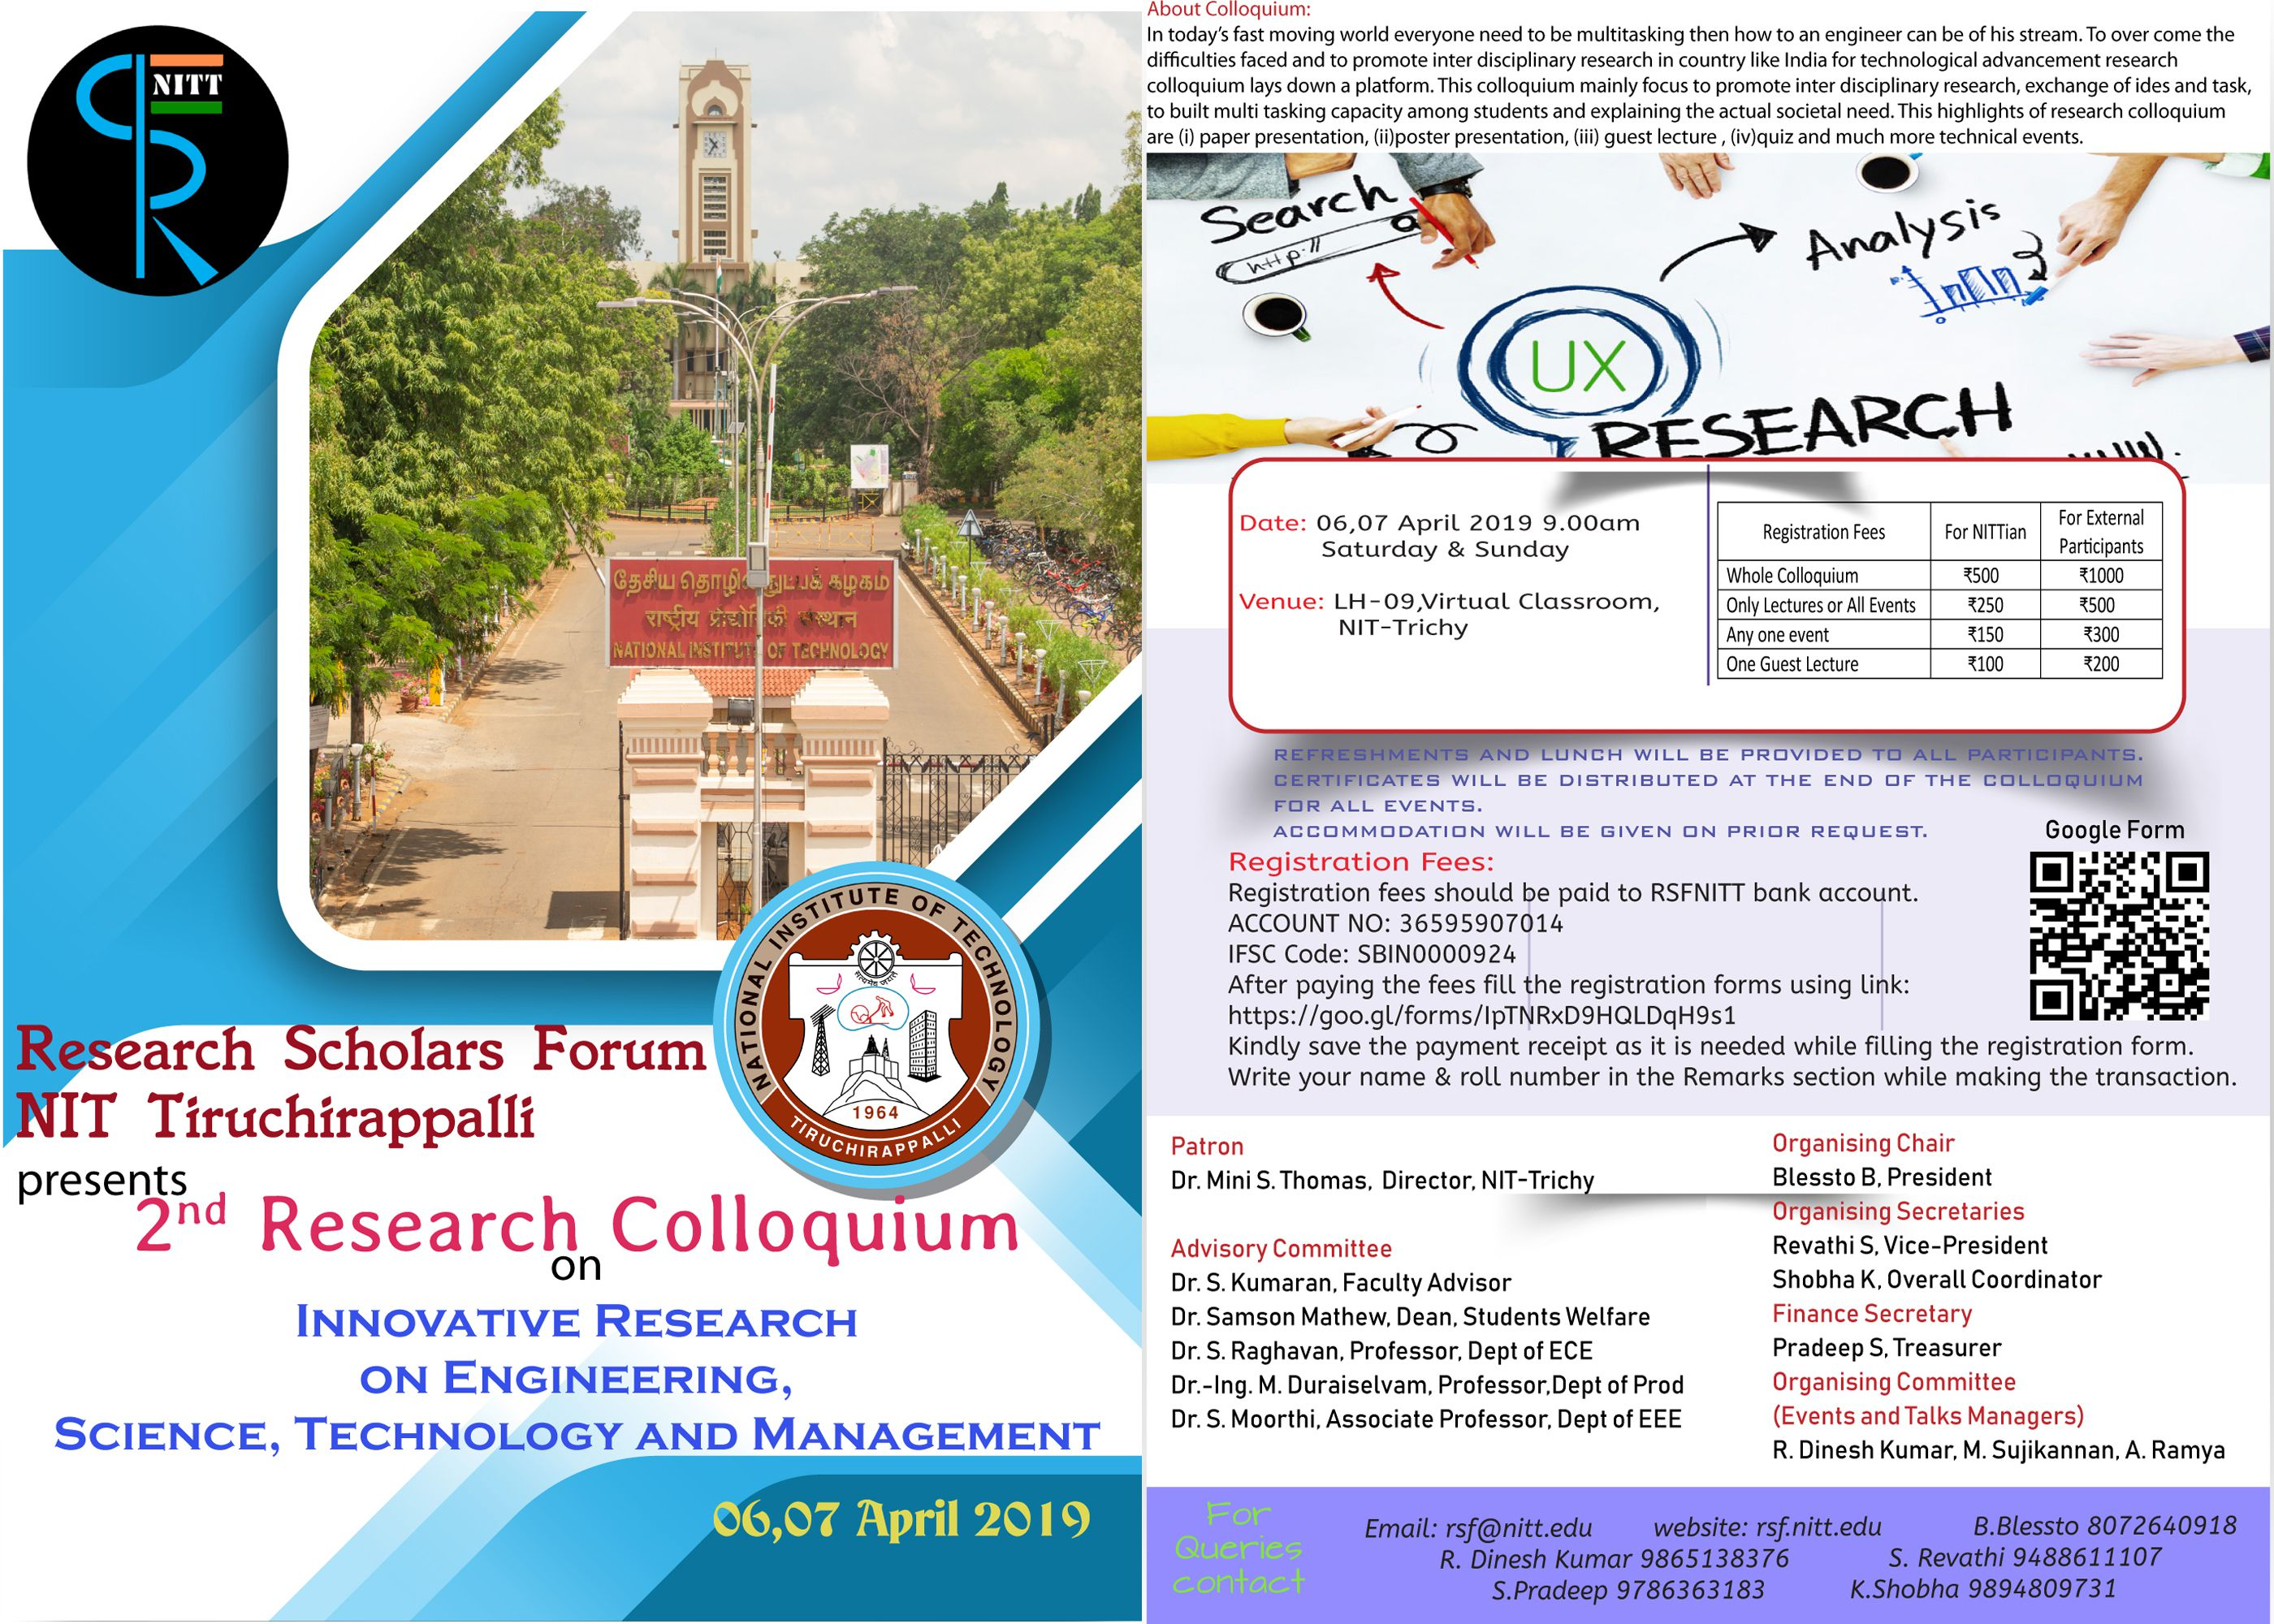 2nd Research Colloquium 2019